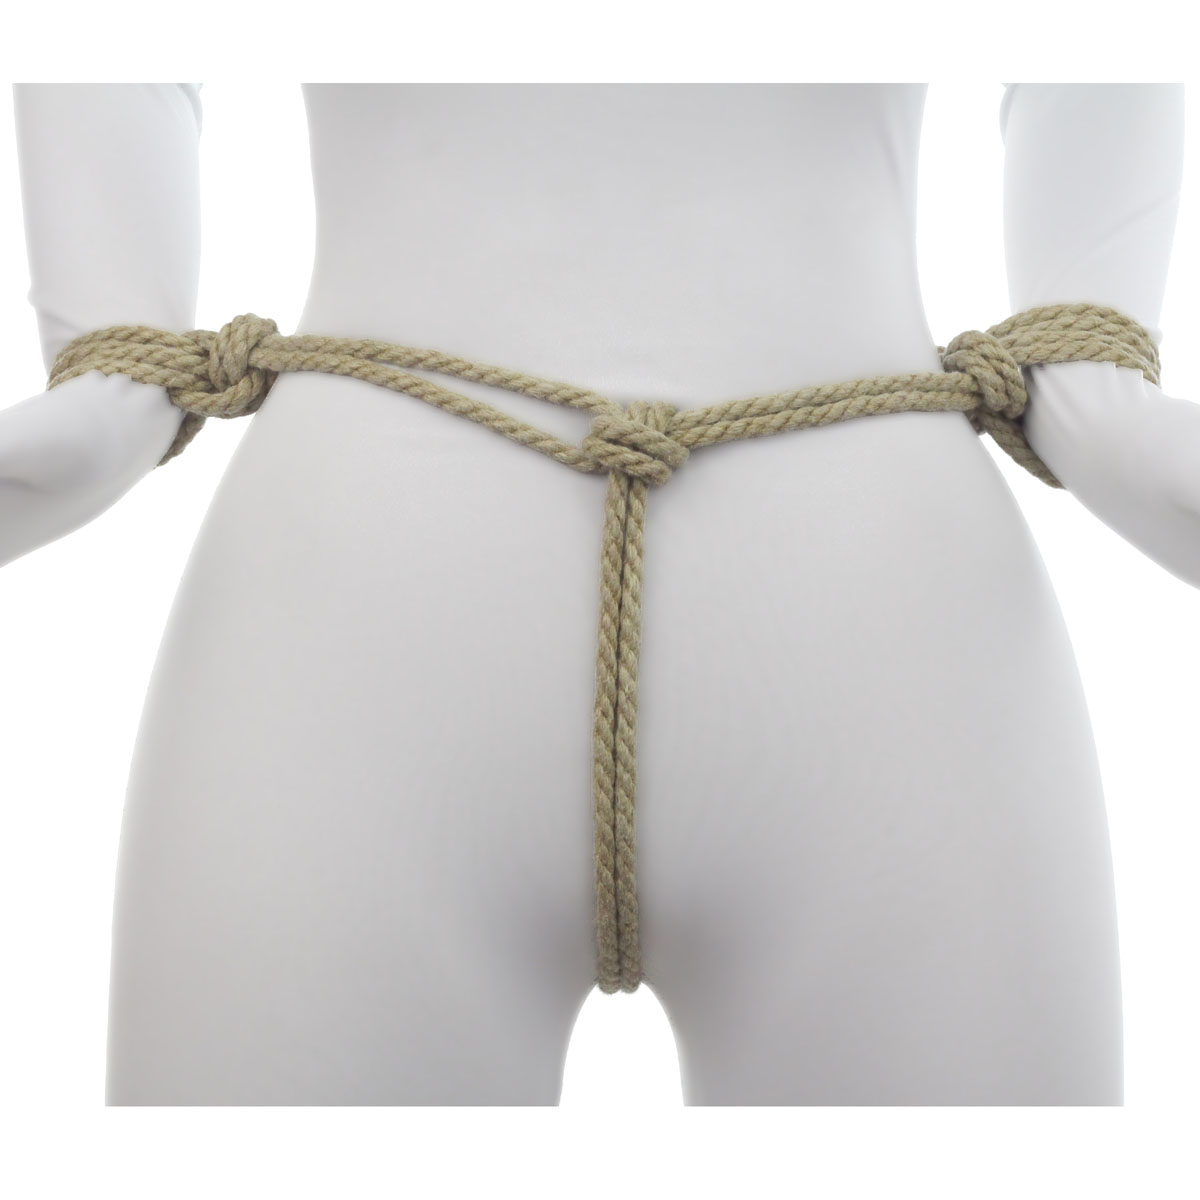 Bondage-Belt-with-Happy-Strap